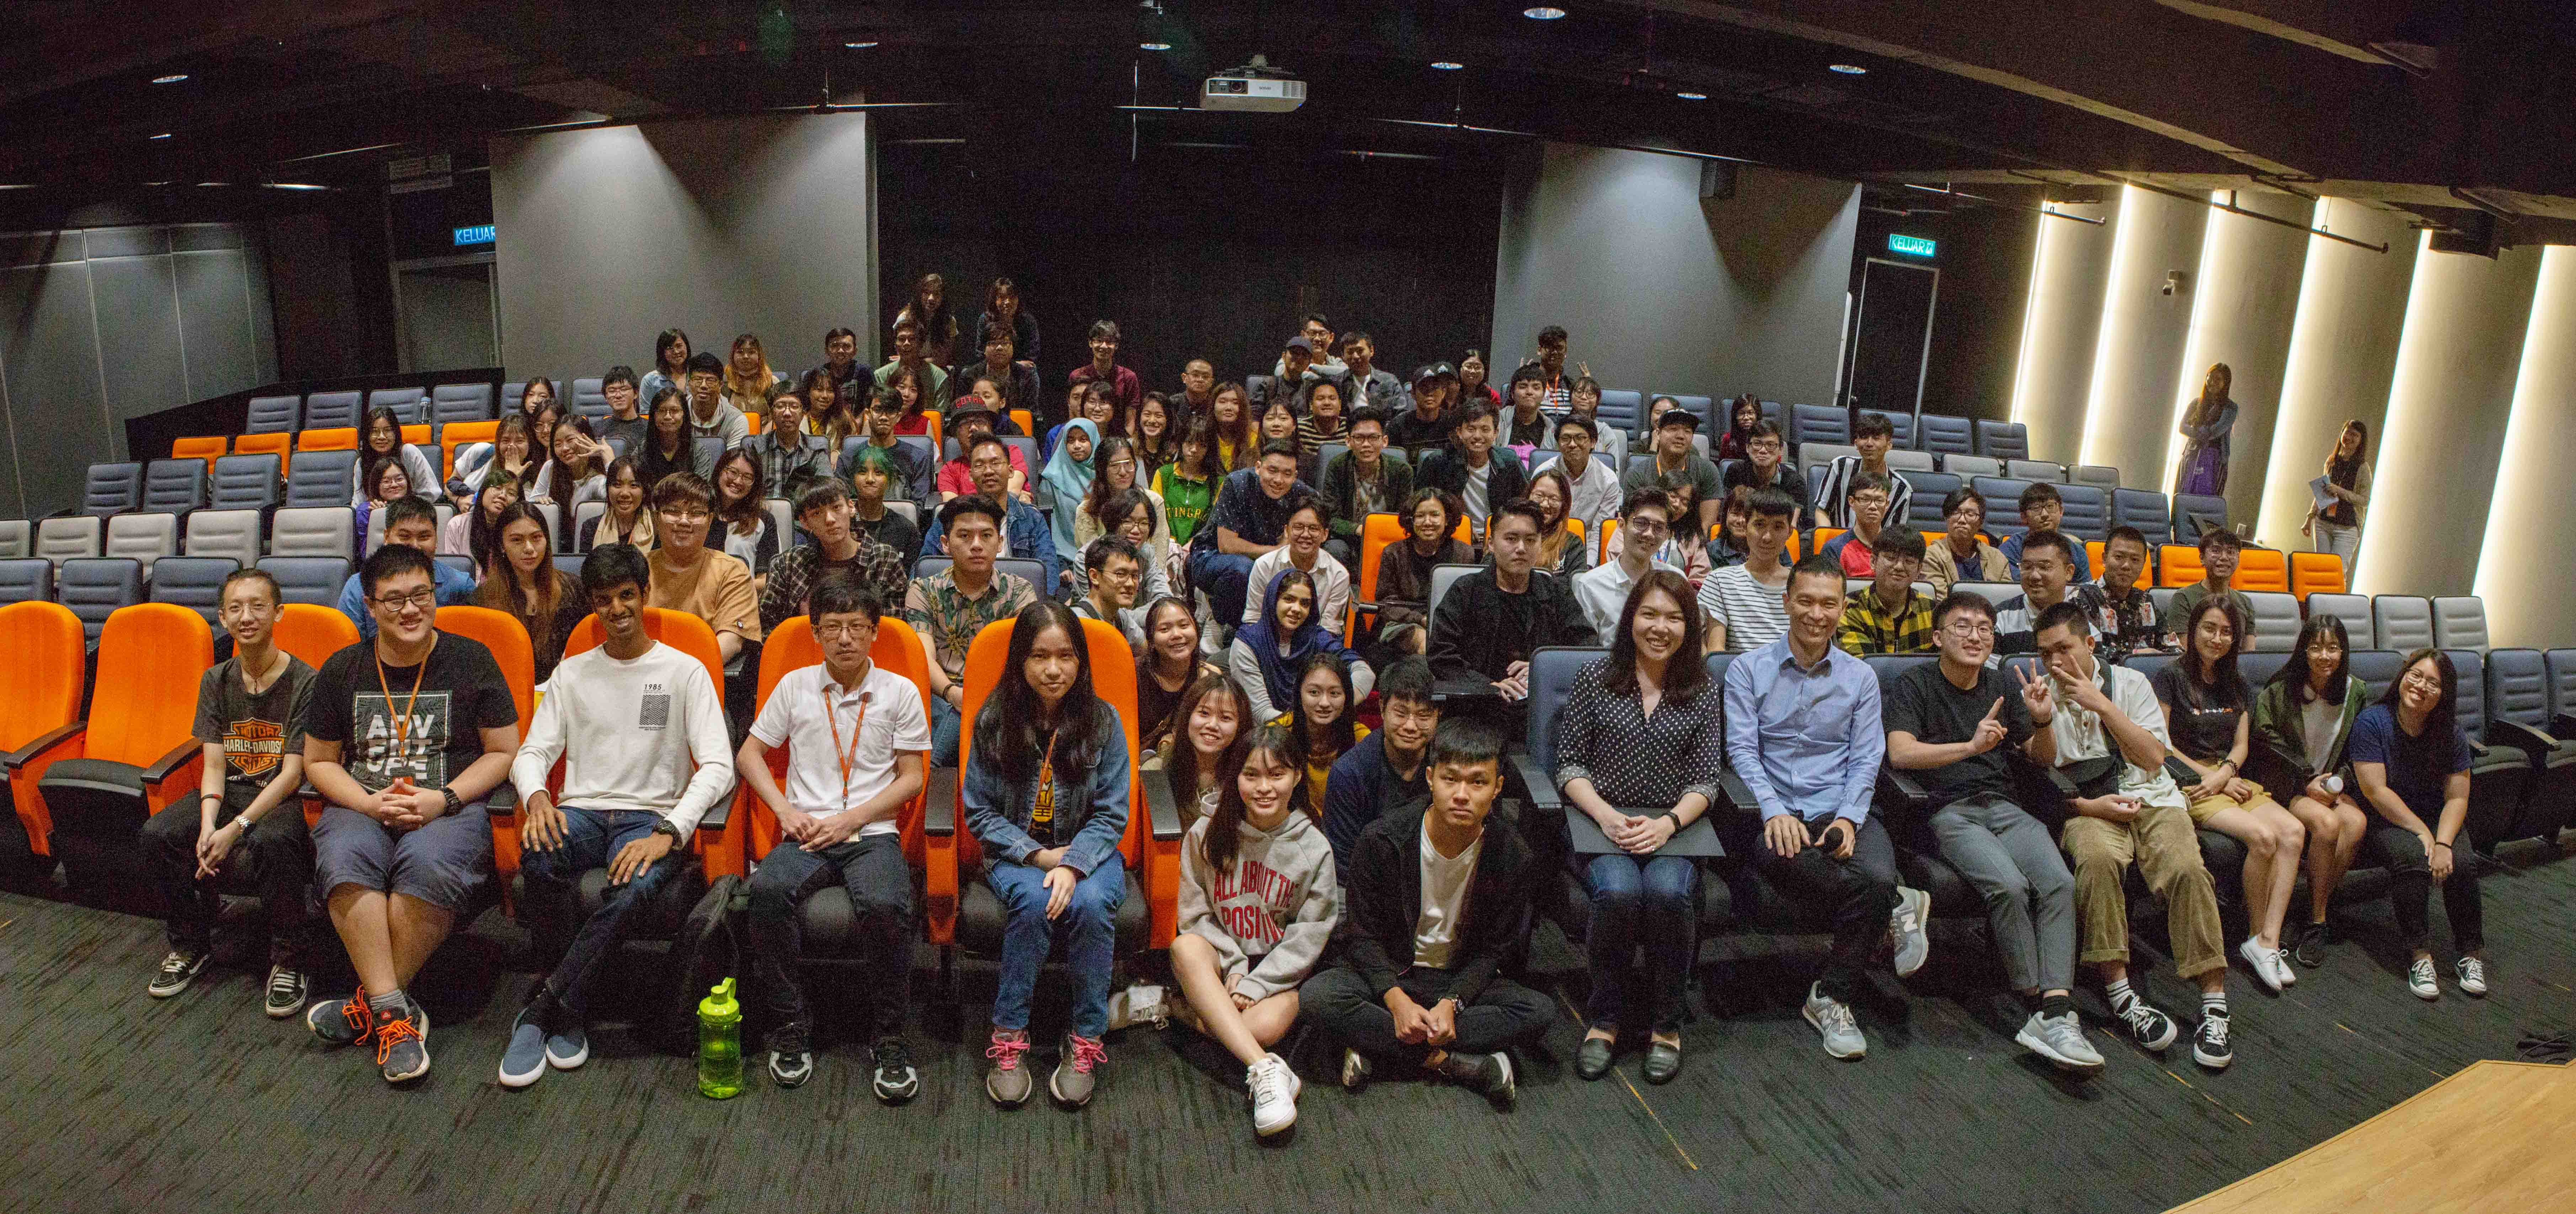 A group photo together with the students of Digital Media Design